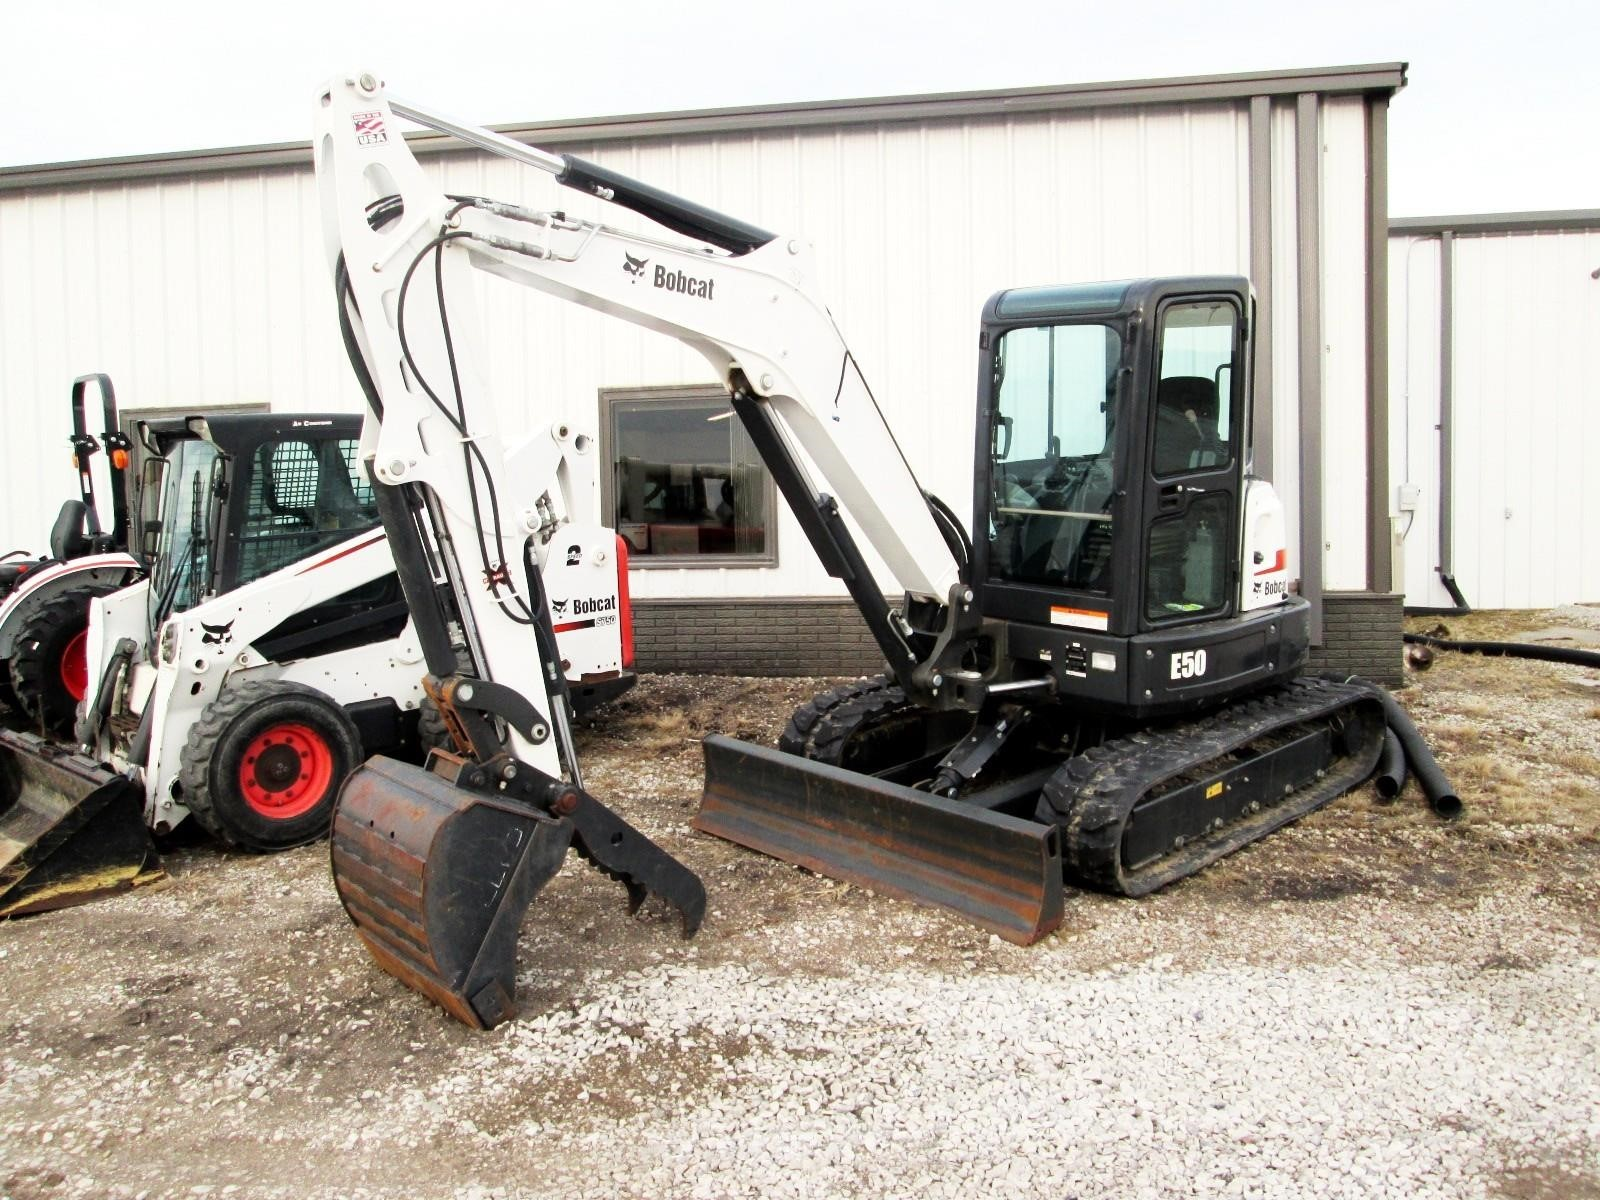 2017 Bobcat E50 Excavators and Mini Excavator